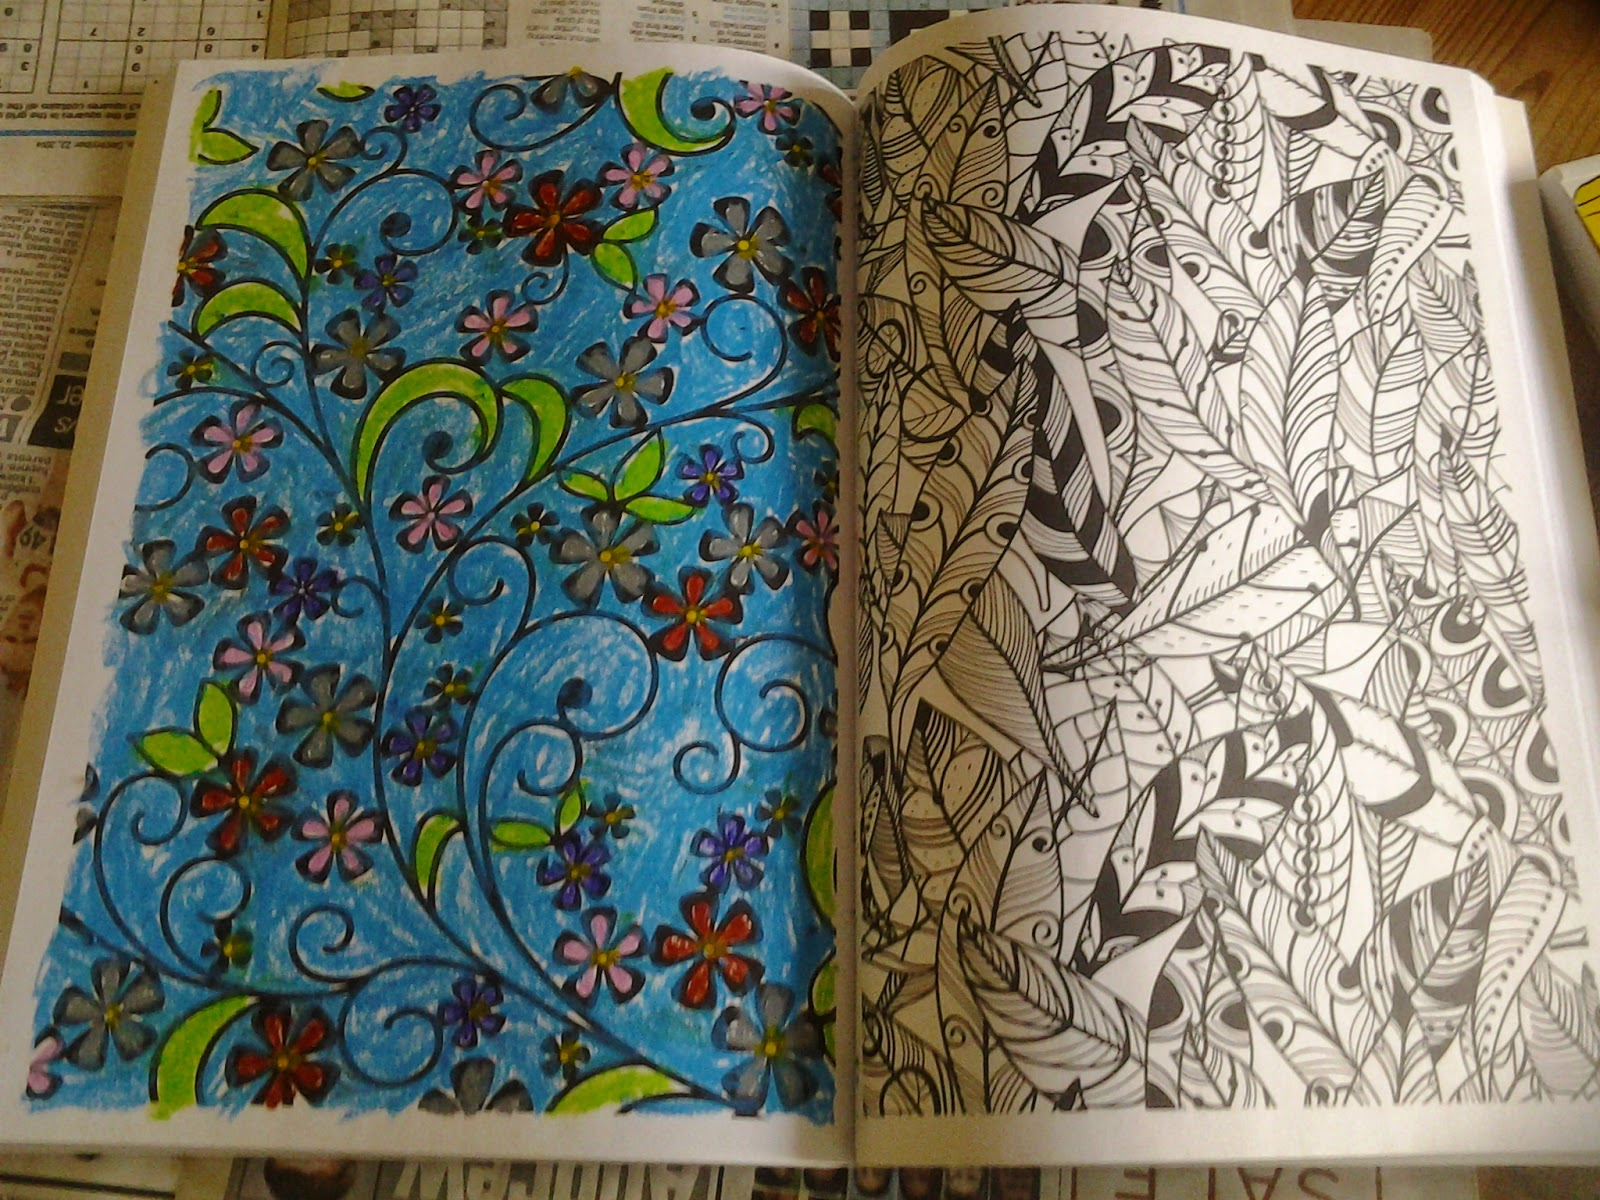 91 Japanese Patterns Coloring Book